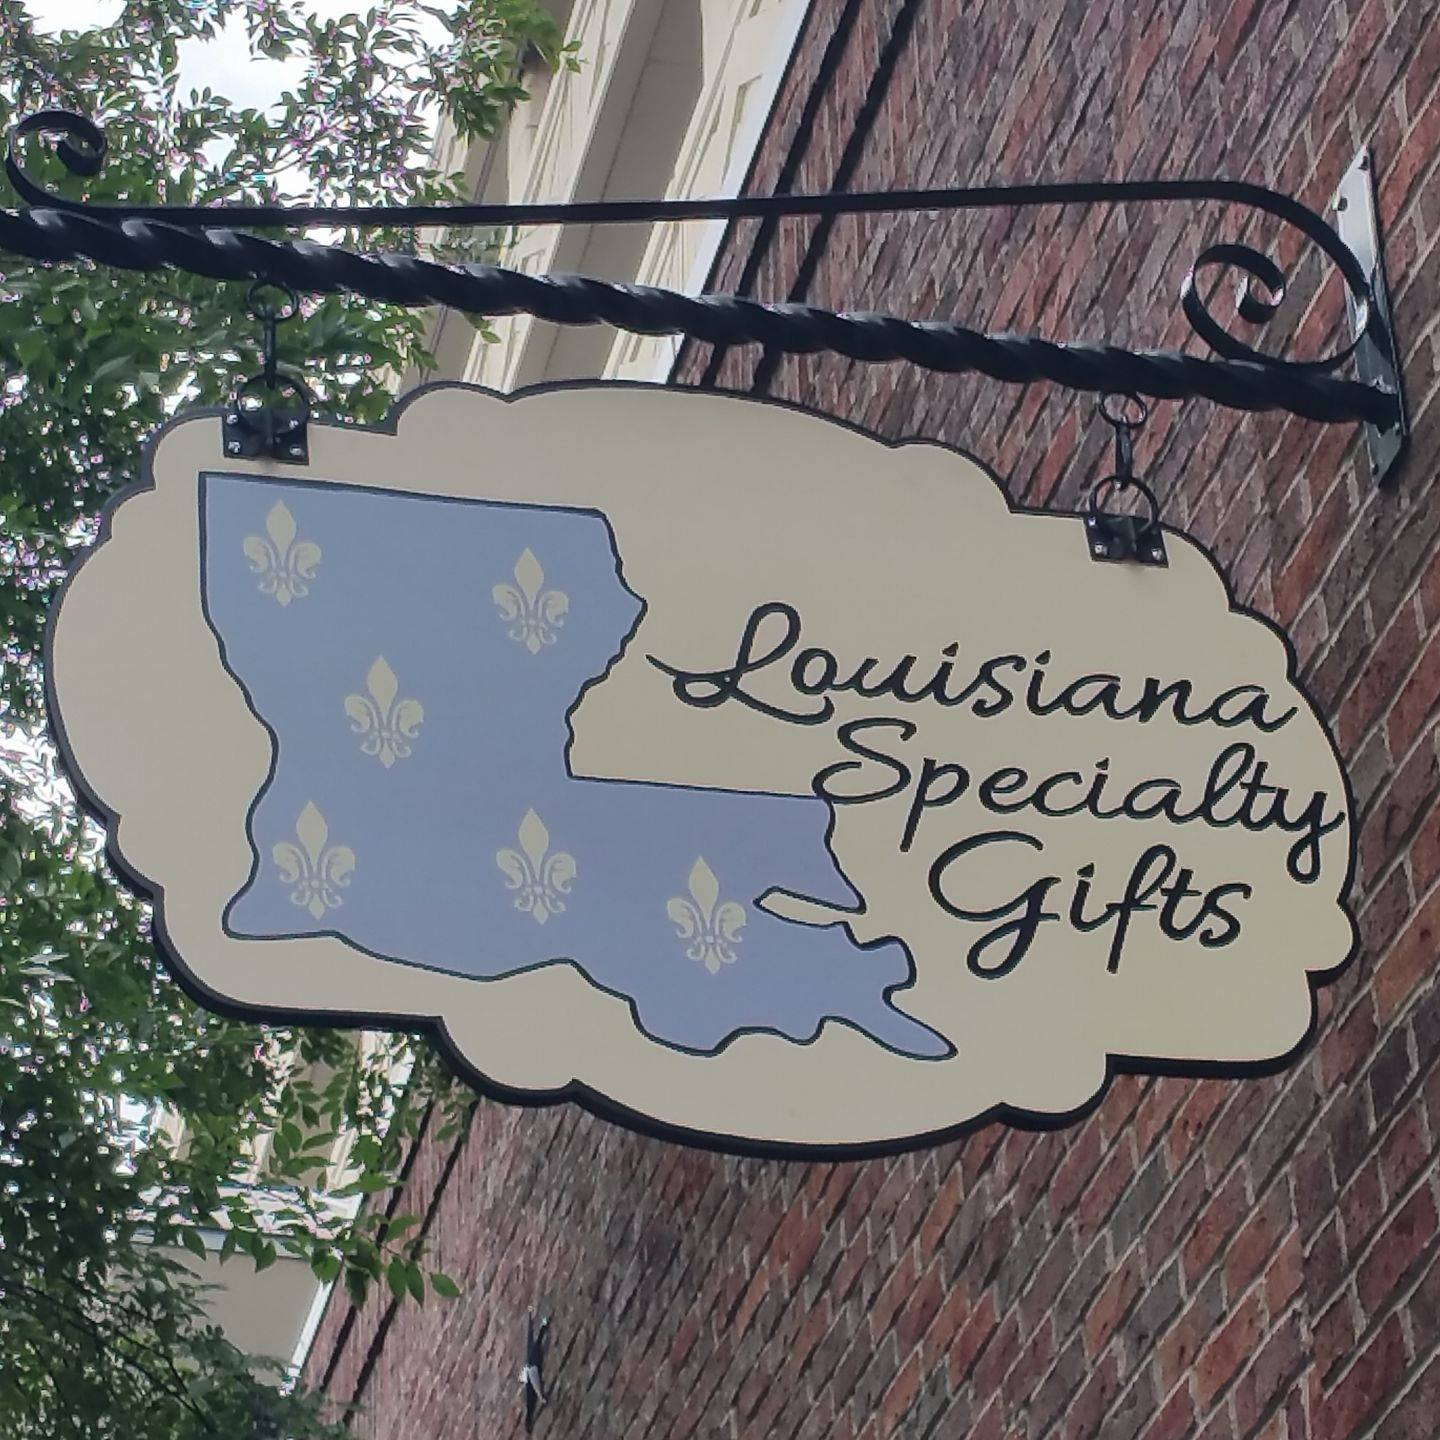 Louisiana Speciality Gifts